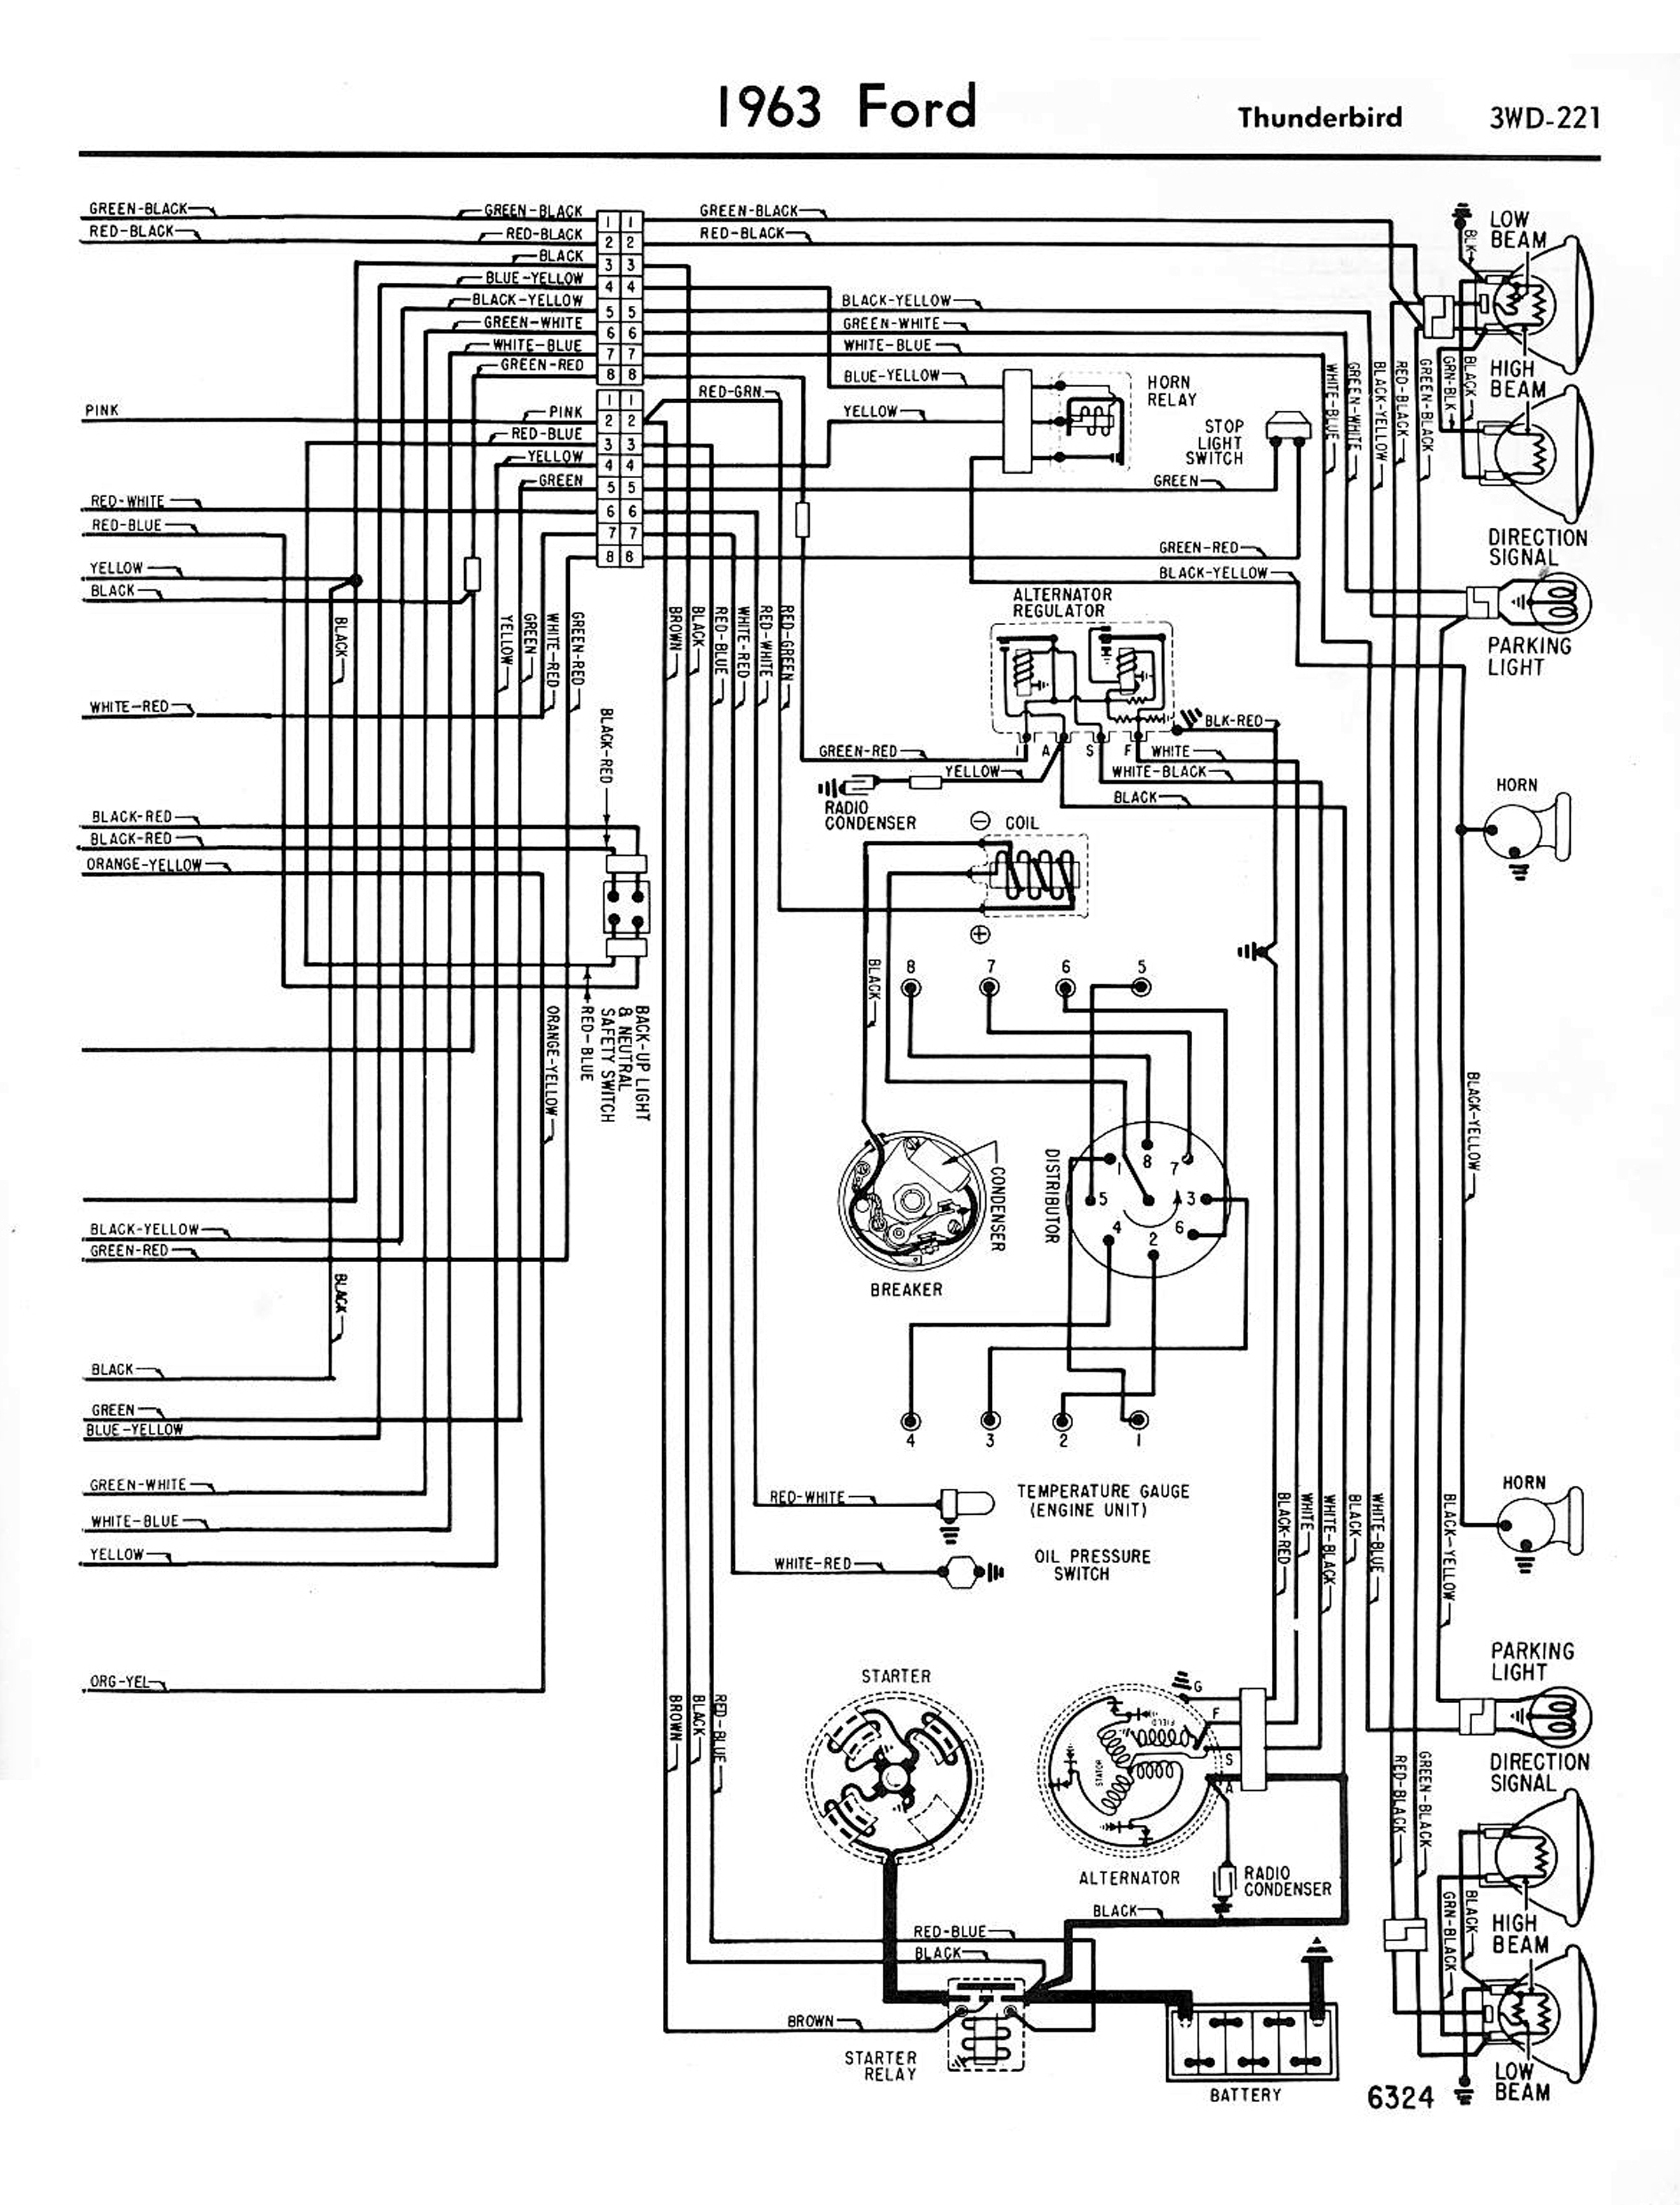 63 Thunderbird Voltage Regulator Wiring Diagram Library 1963 Ford Ranchero Flarebird Vacuum Diagrams